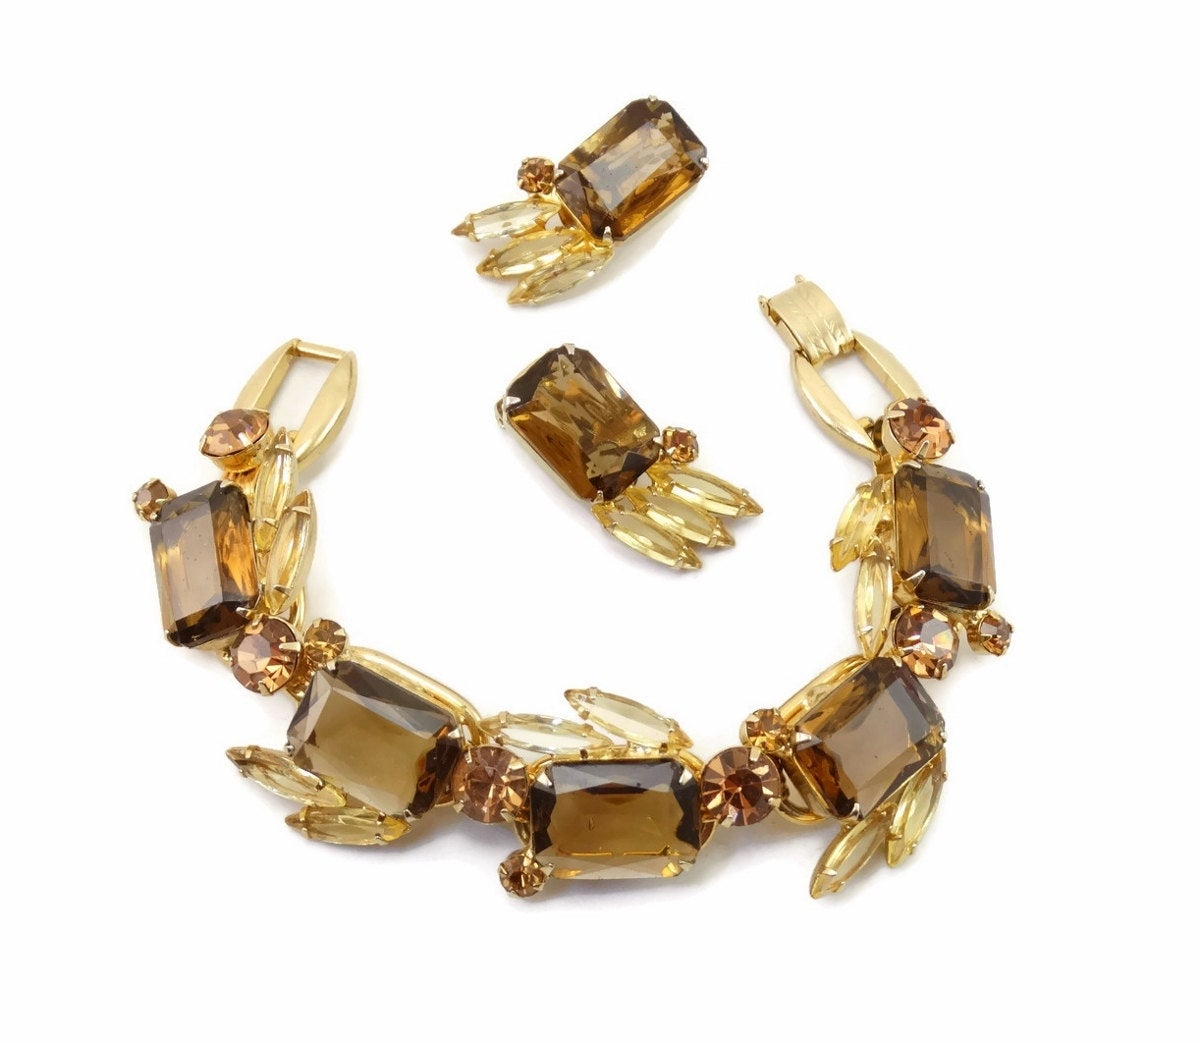 Vintage D&E JULIANA Golden Topaz Rhinestone 5 Link Bracelet Earrings Demi-Parure Rare! #couture https://etsy.me/2fZy7XR pic.twitter.com/HMUaZVHRFt